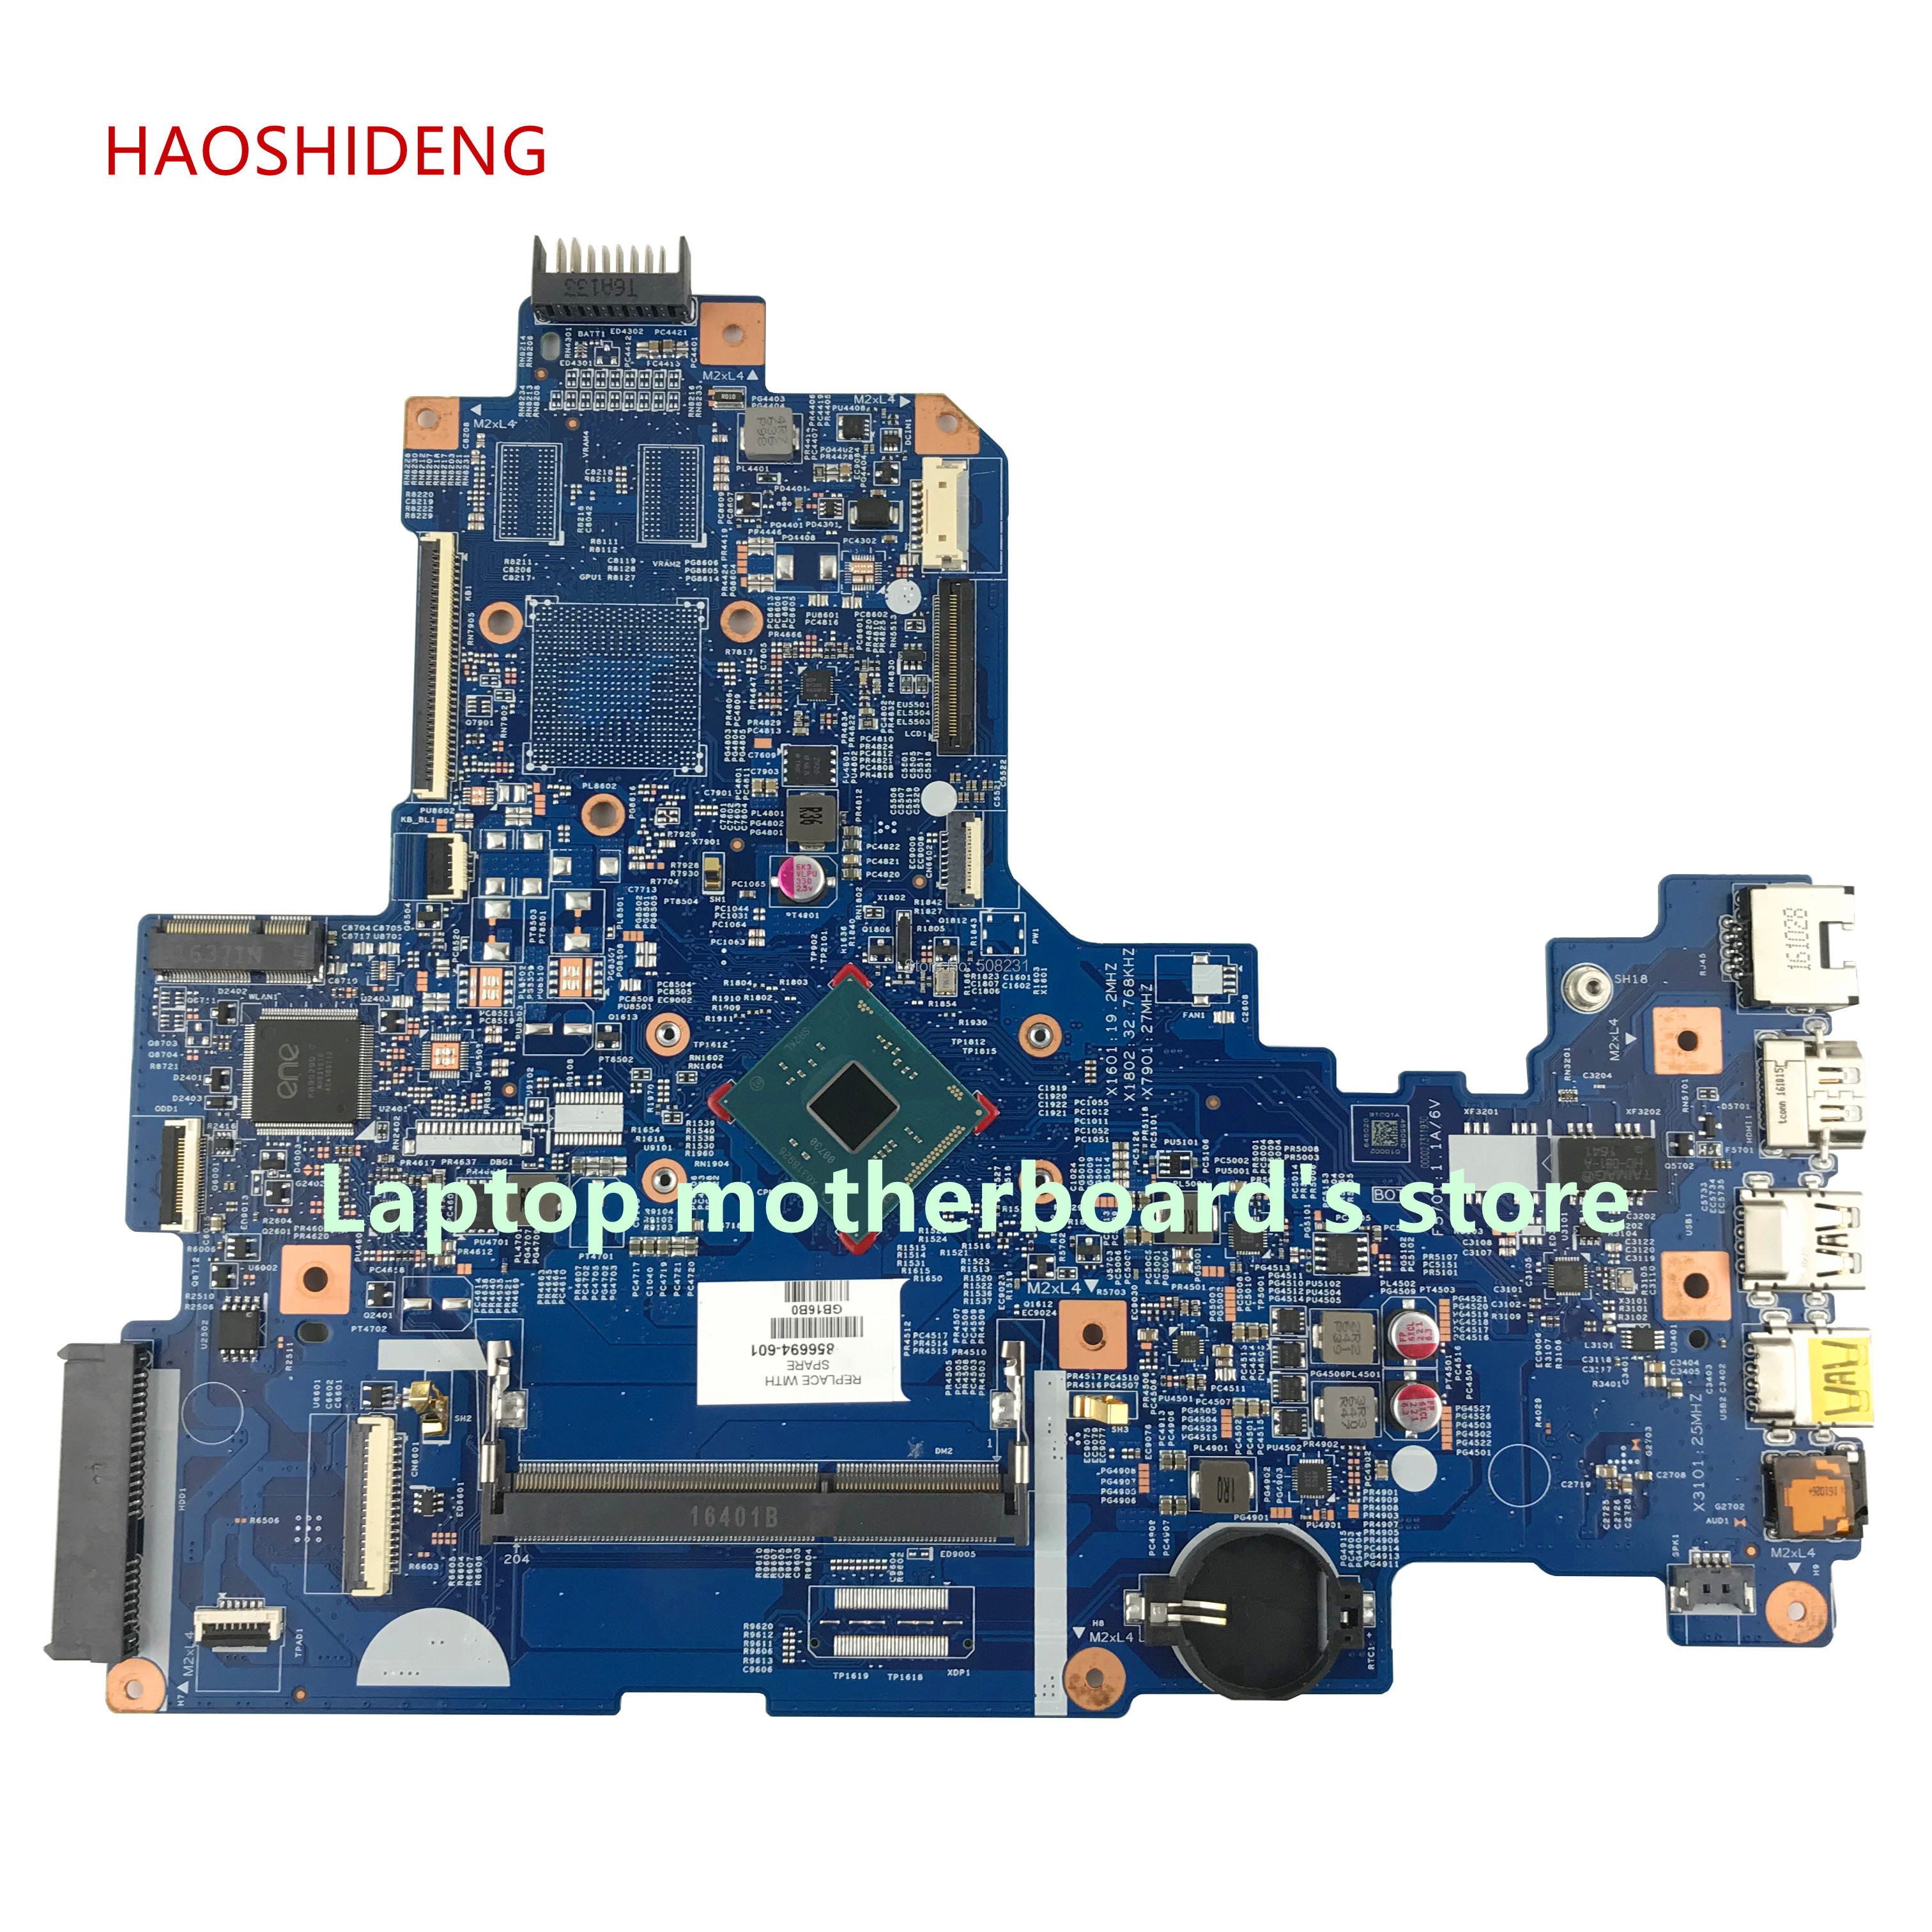 HAOSHIDENG 856694-601 15288-1 448.08D01.0011 for HP NOTEBOOK 17-X 17T-X 17-X010NR laptop motherboard with N3710 fully Tested haoshideng 902337 601 448 08p03 0021 for hp notebook 17 y 17z y 17 y007cy notebook motherboard 902337 501 with a12 9700p cpu